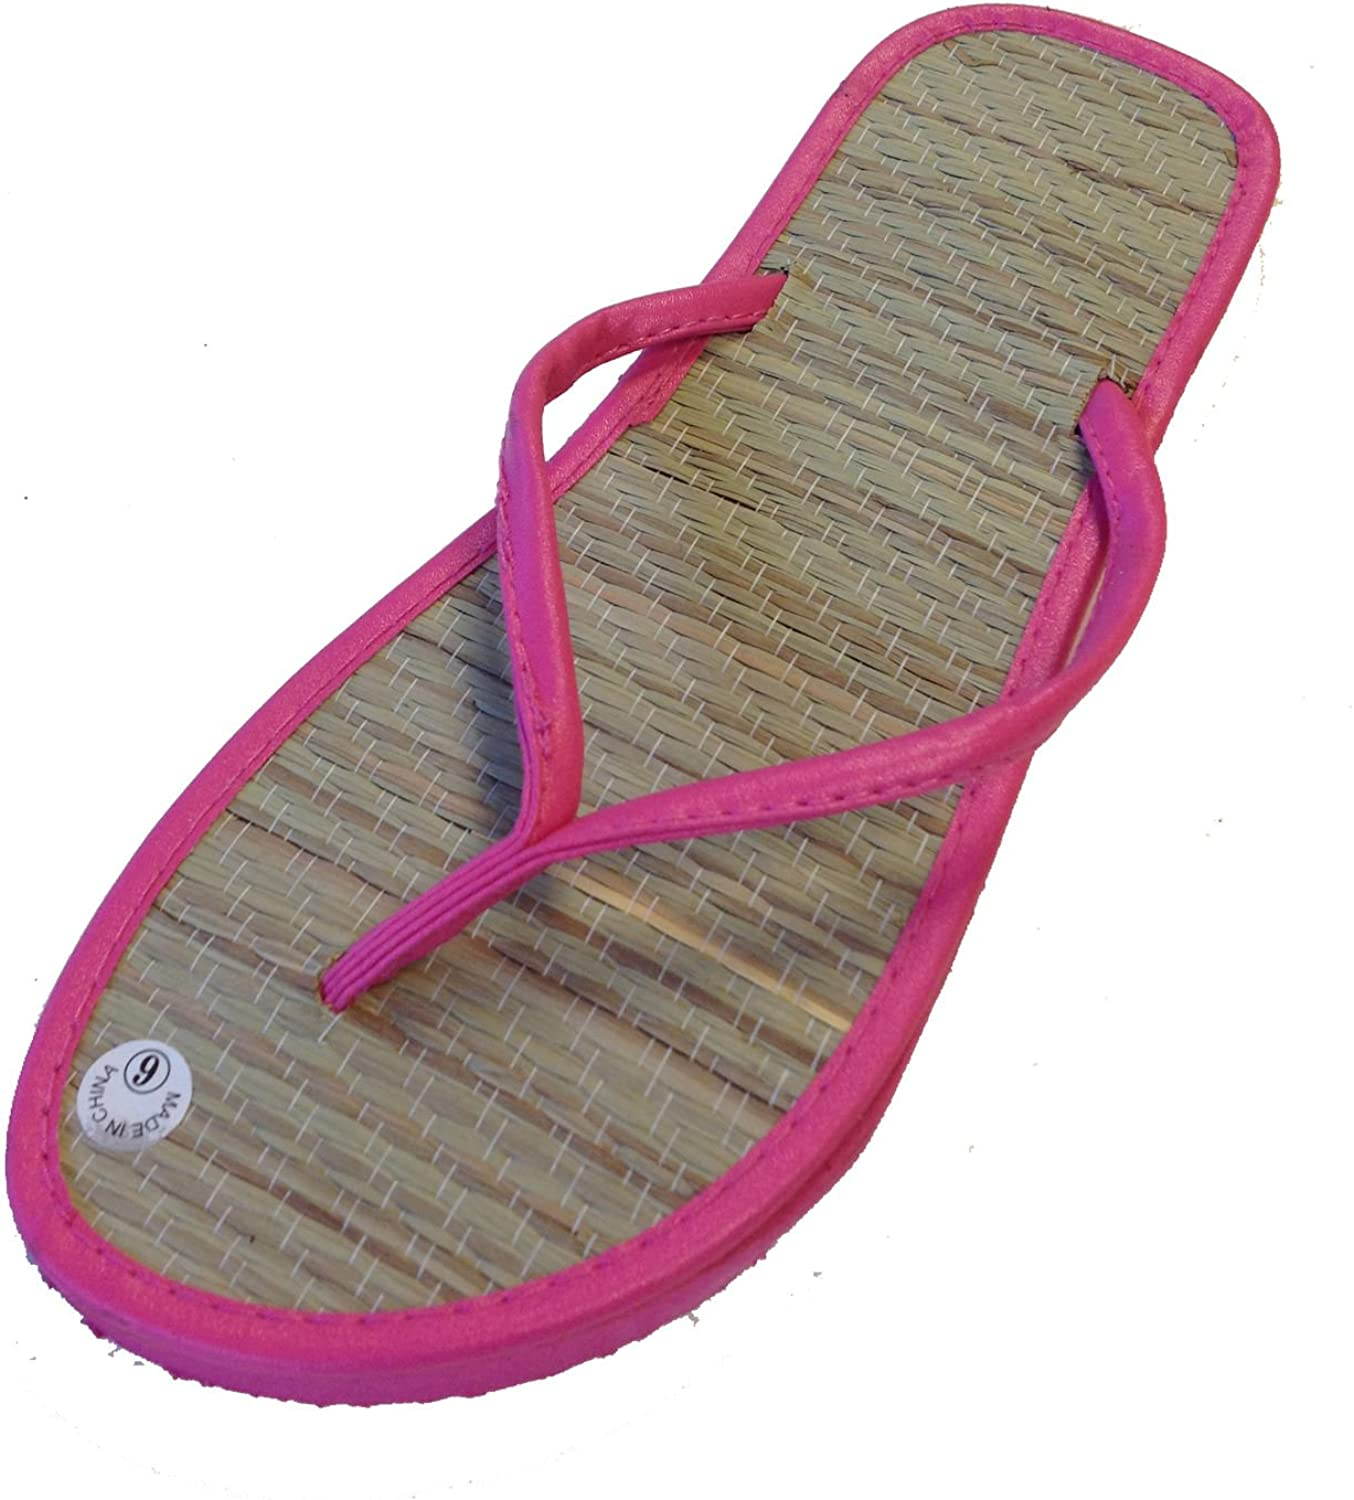 L.A. Beauty Womens Bamboo Sandals by